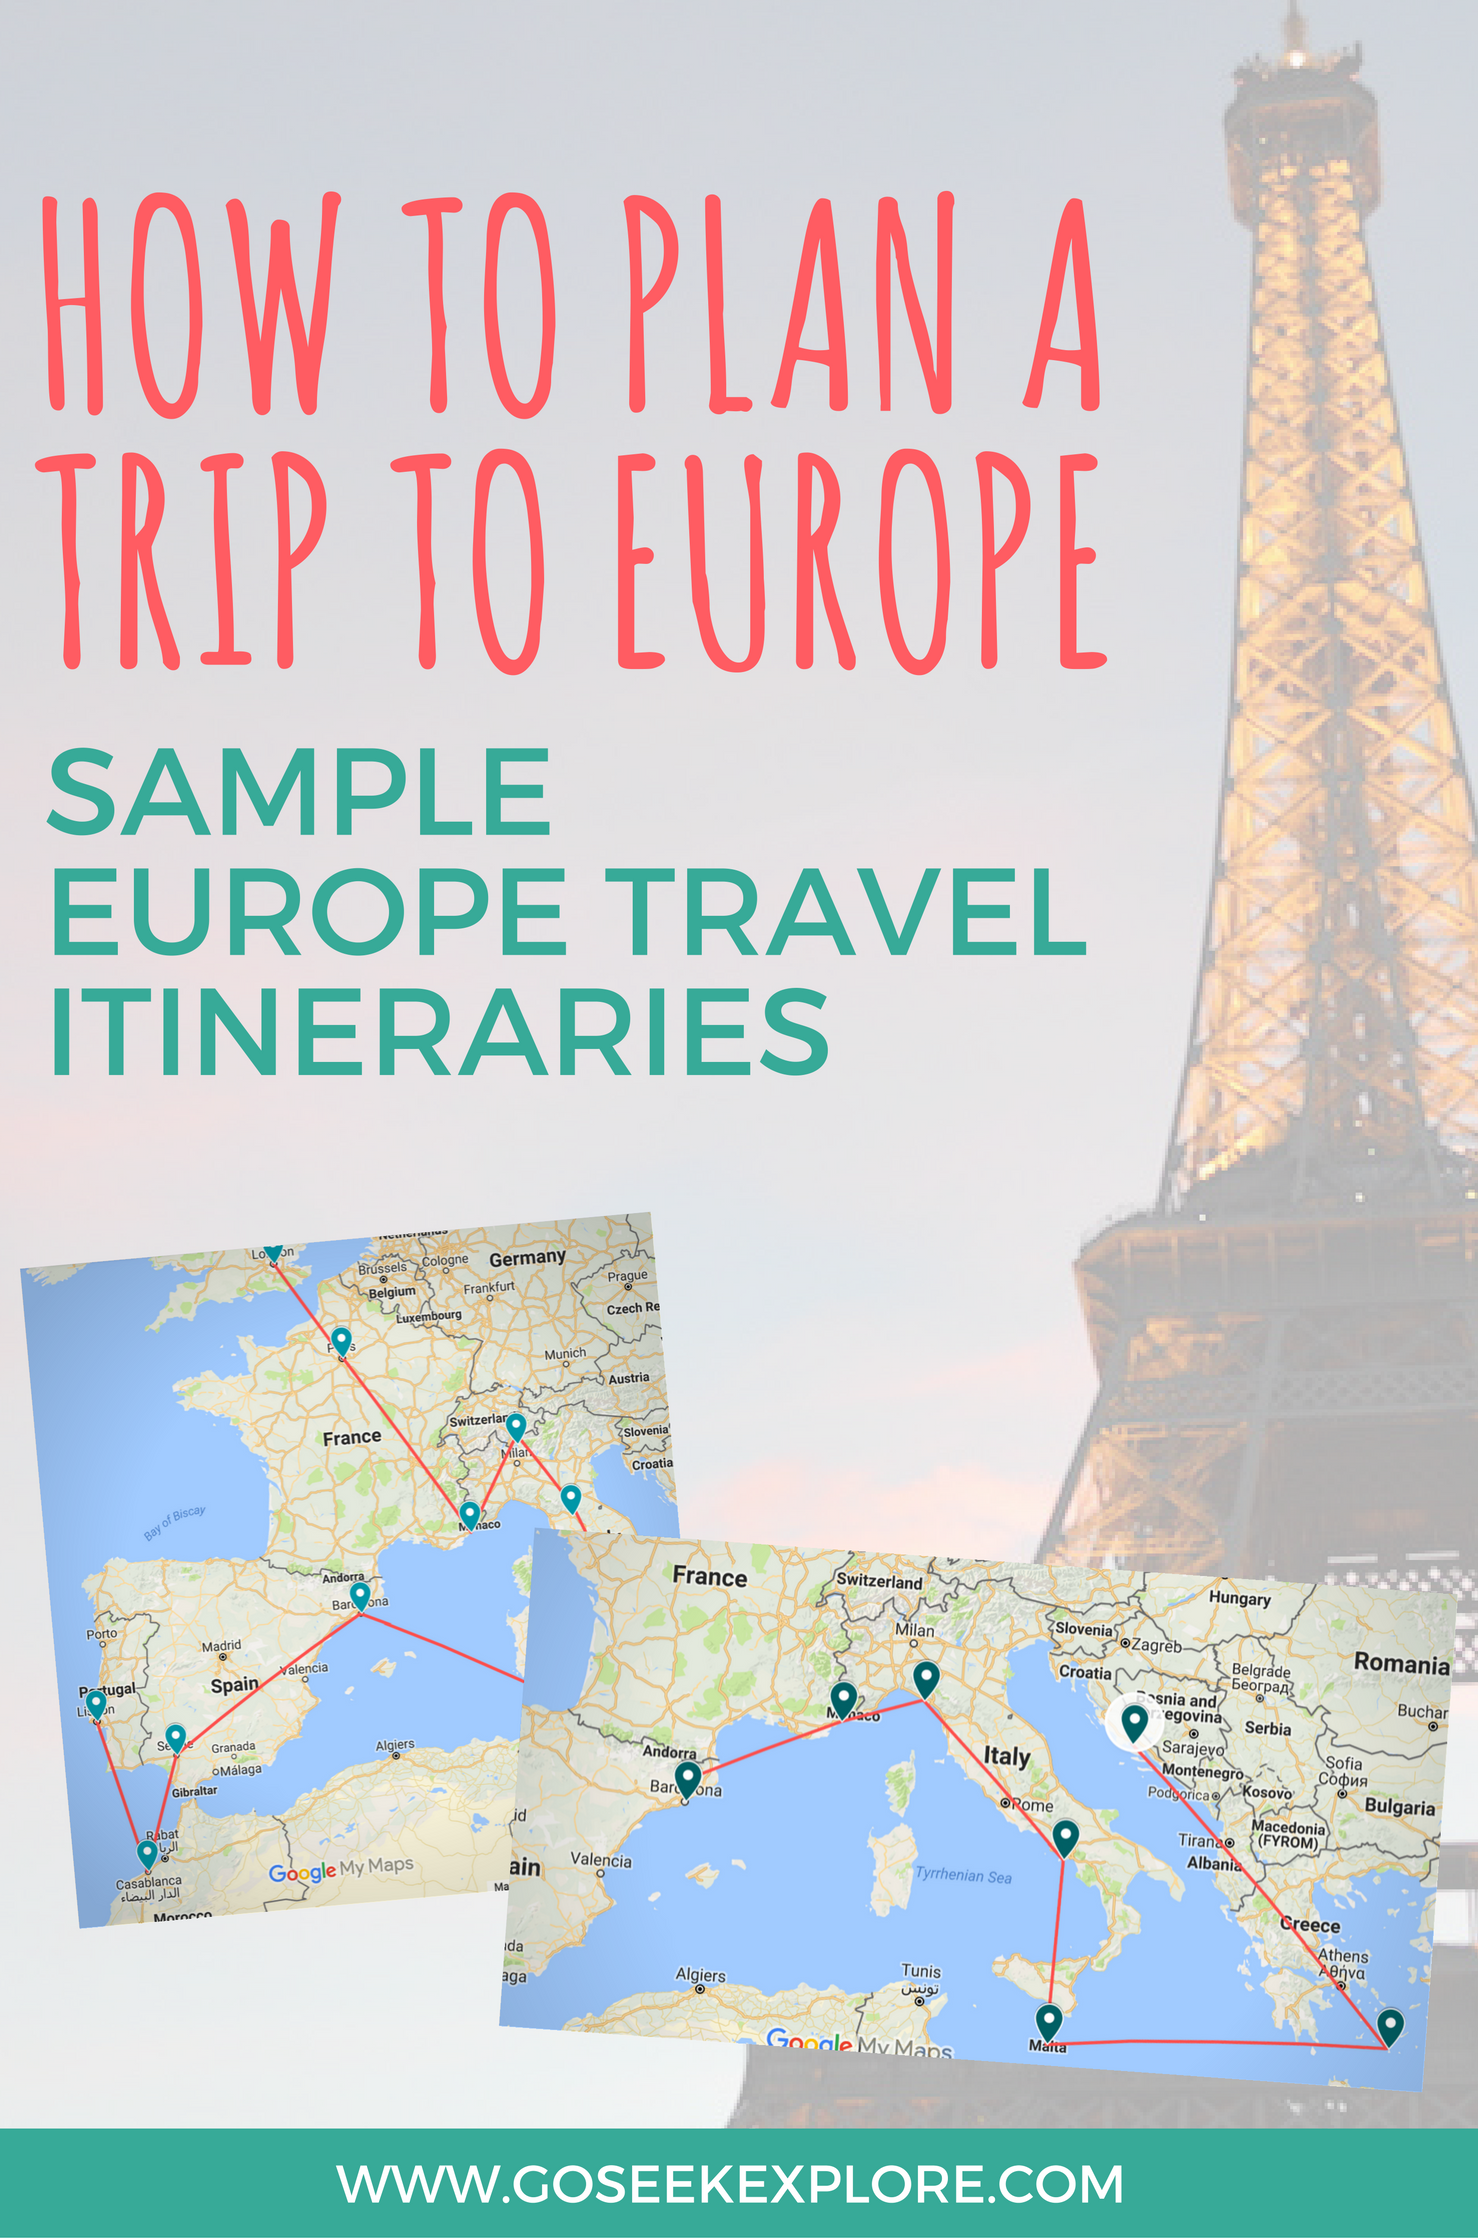 How to plan a trip to europe sample travel itineraries go seek how to plan a trip to europe sample travel itineraries gumiabroncs Image collections